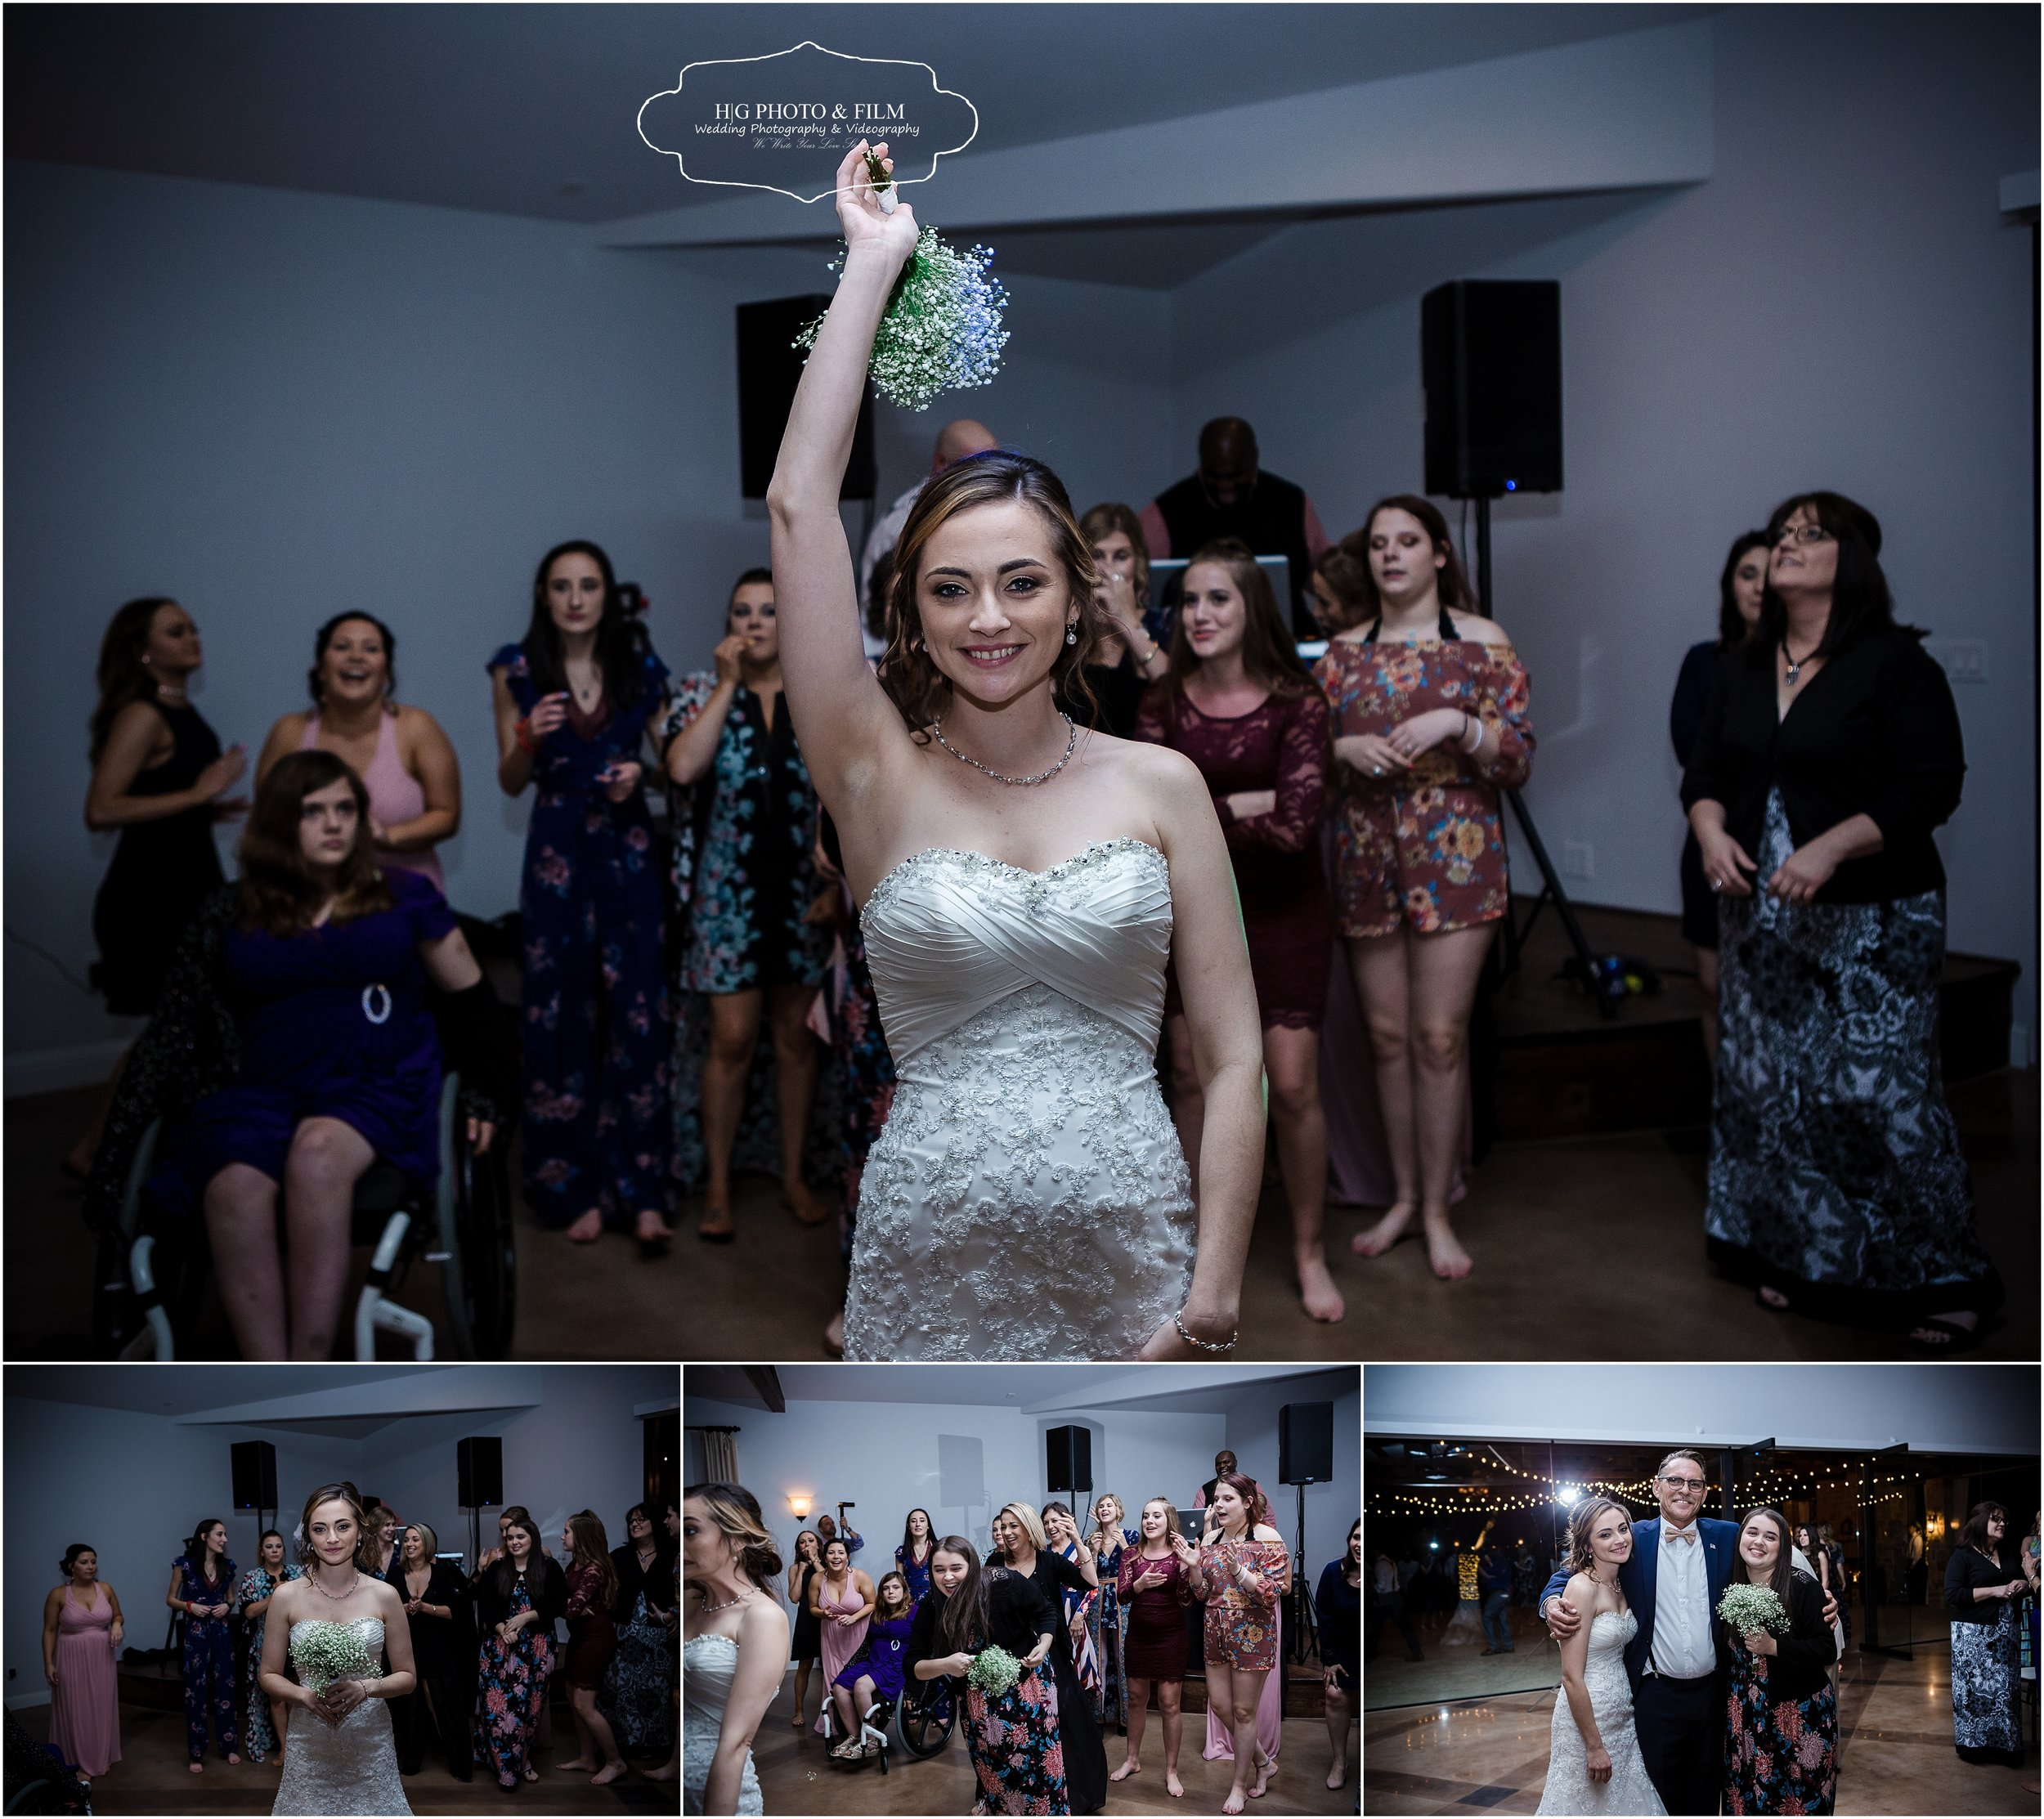 Bouquet toss, so fun when sister catches it